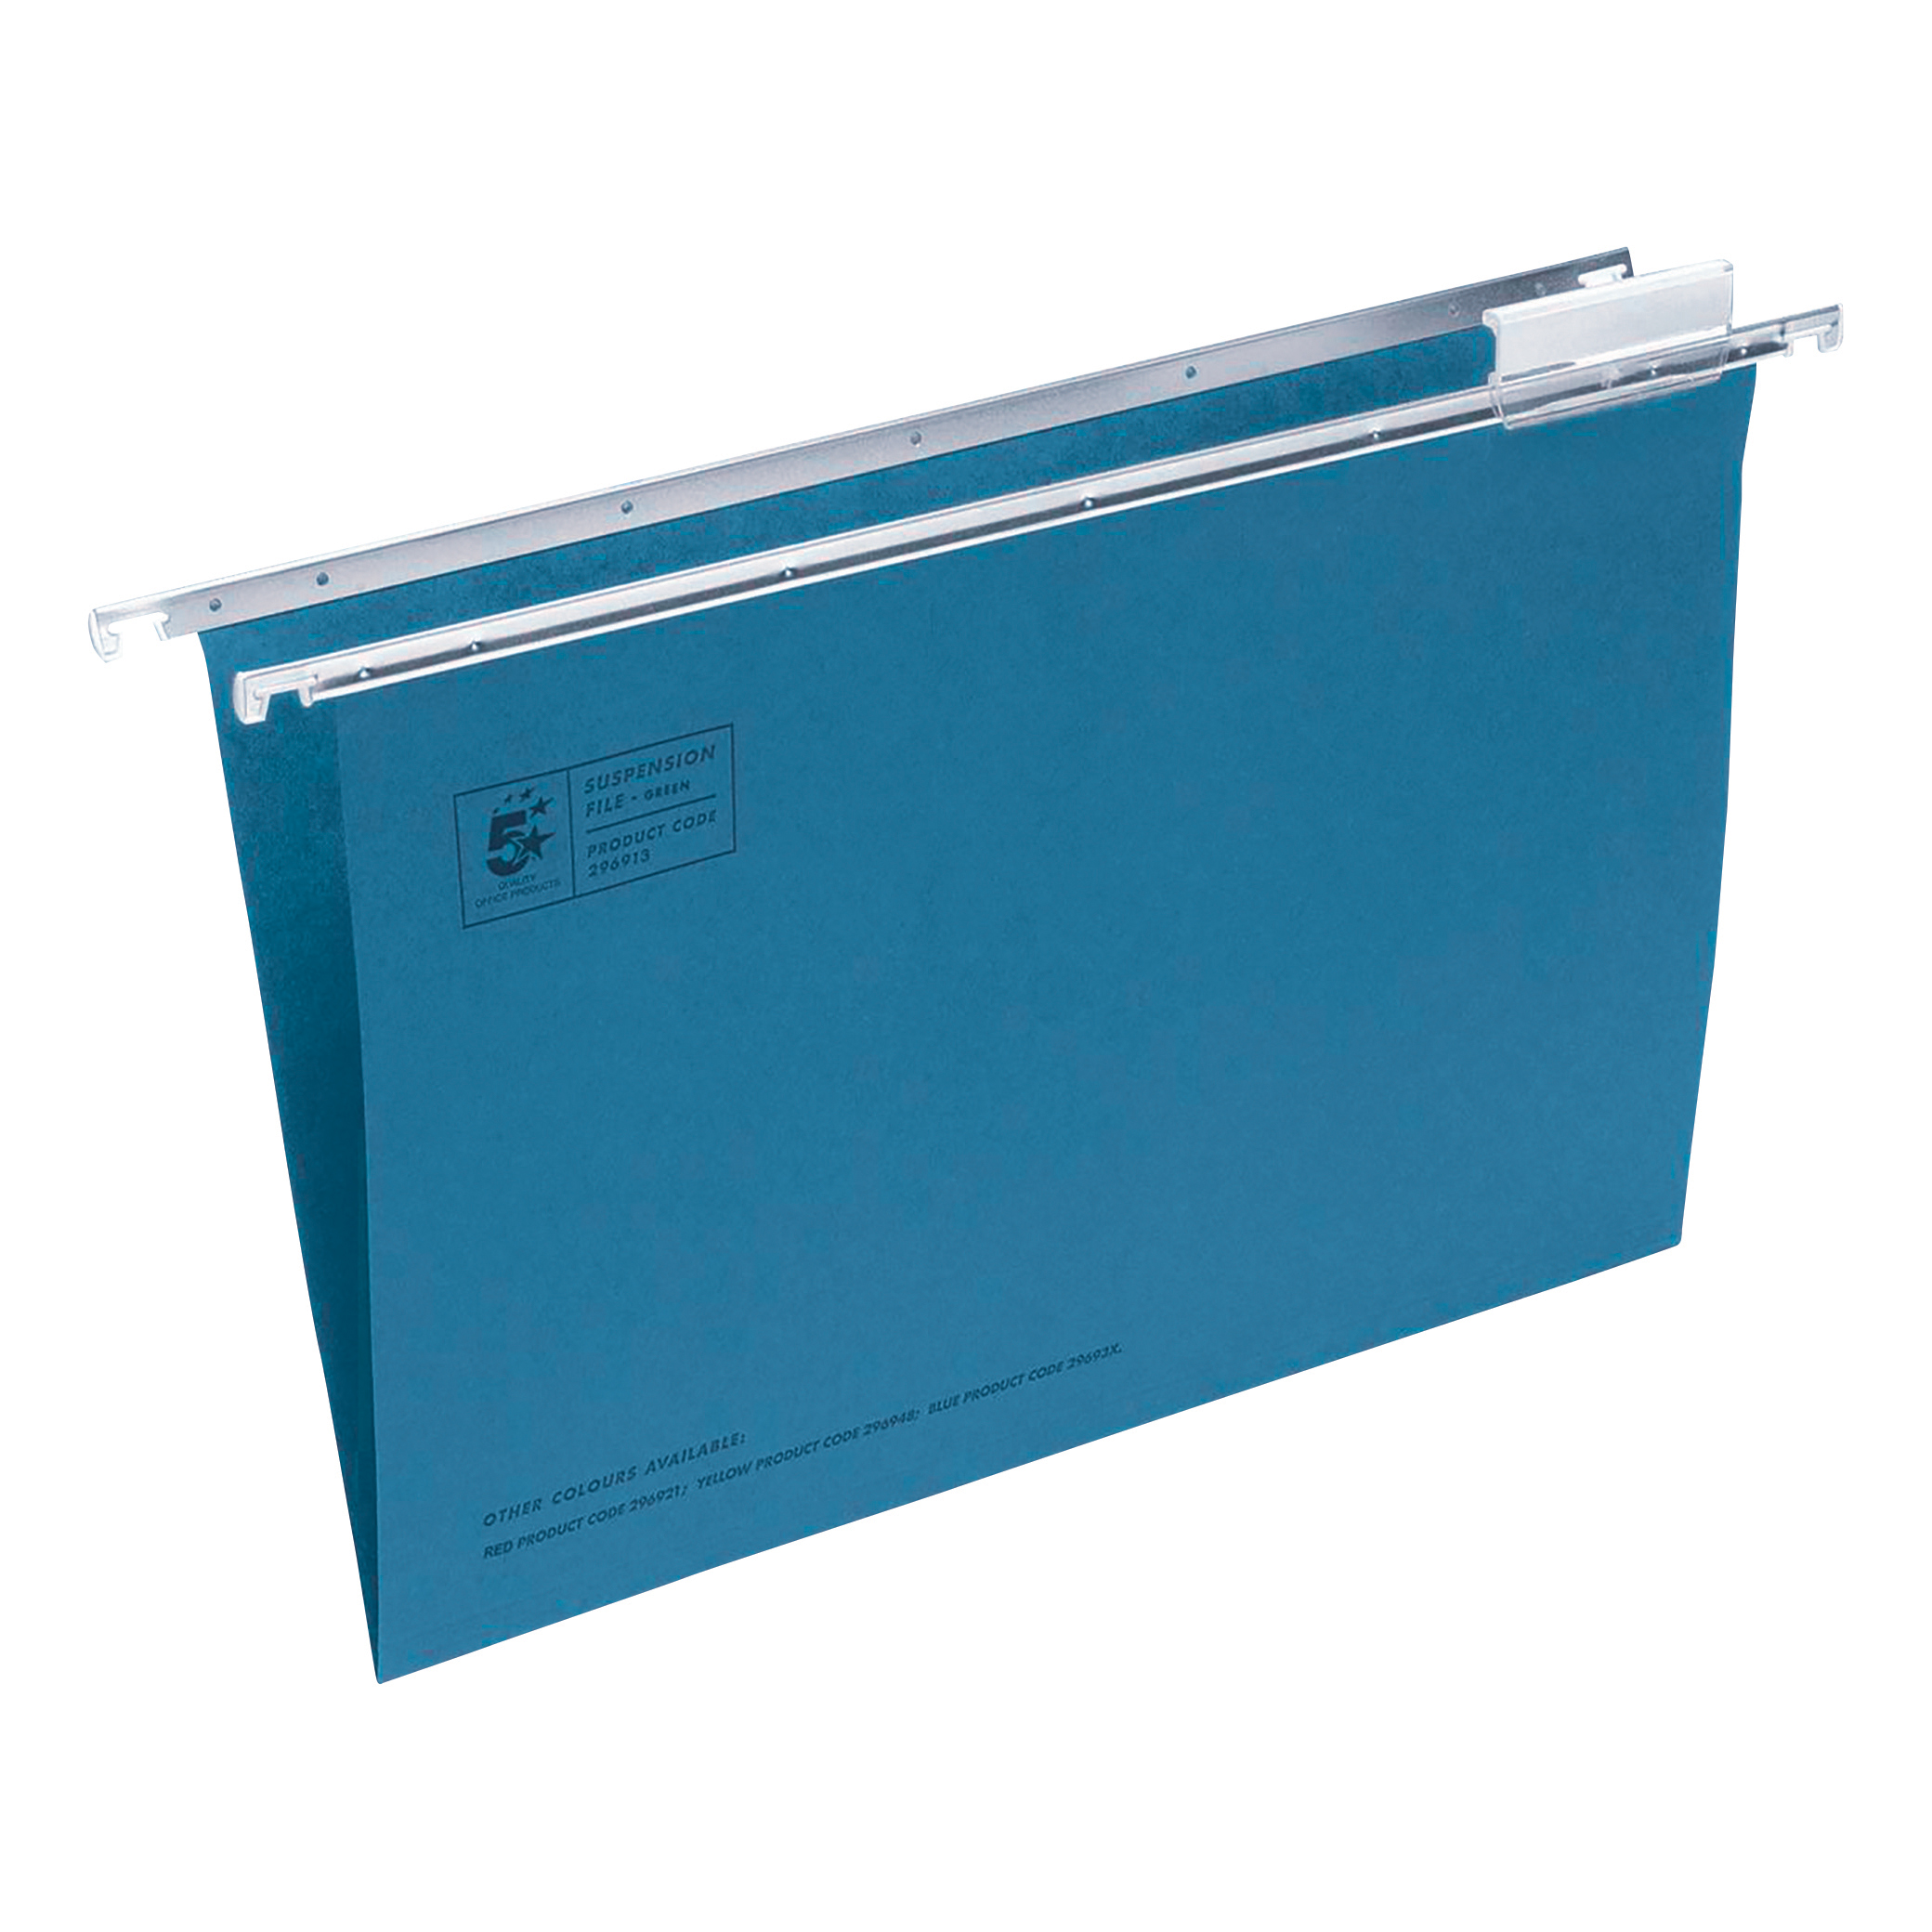 Suspension File 5 Star Office Suspension File with Tabs and Inserts Manilla 15mm V-base 180gsm Foolscap Blue Pack 50